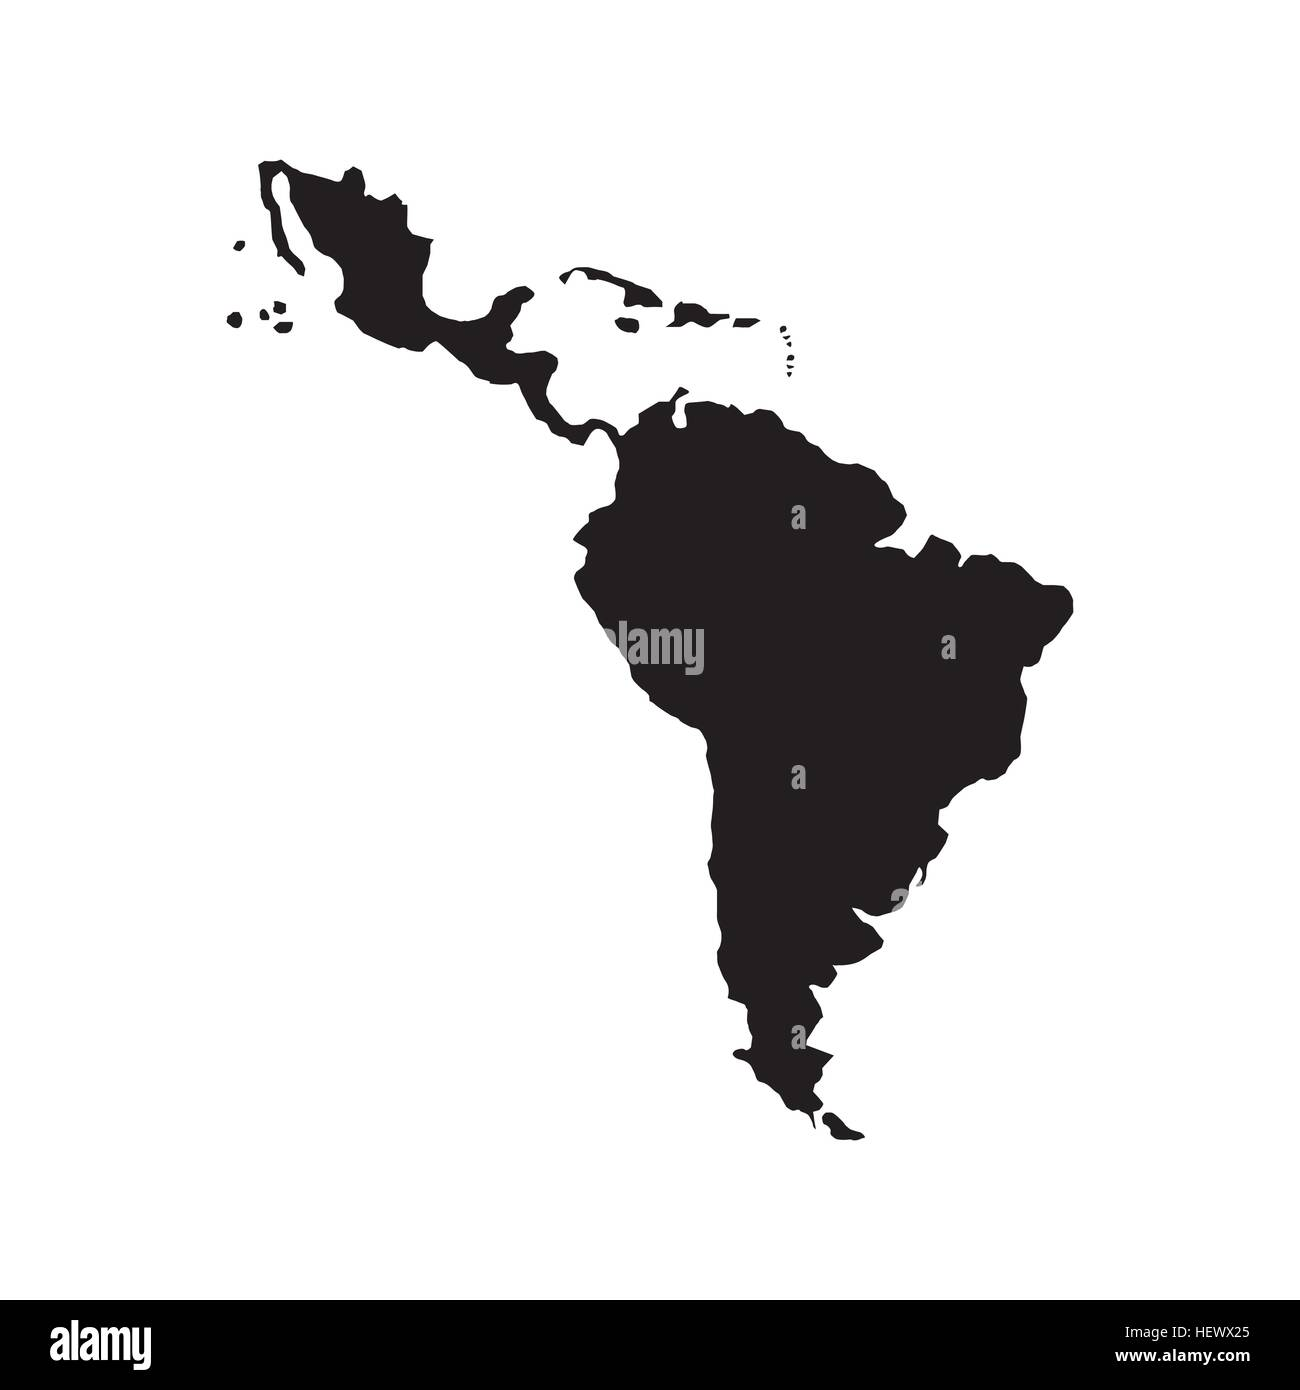 Silhouette of latin america map icon over white background vector silhouette of latin america map icon over white background vector illustration sciox Choice Image